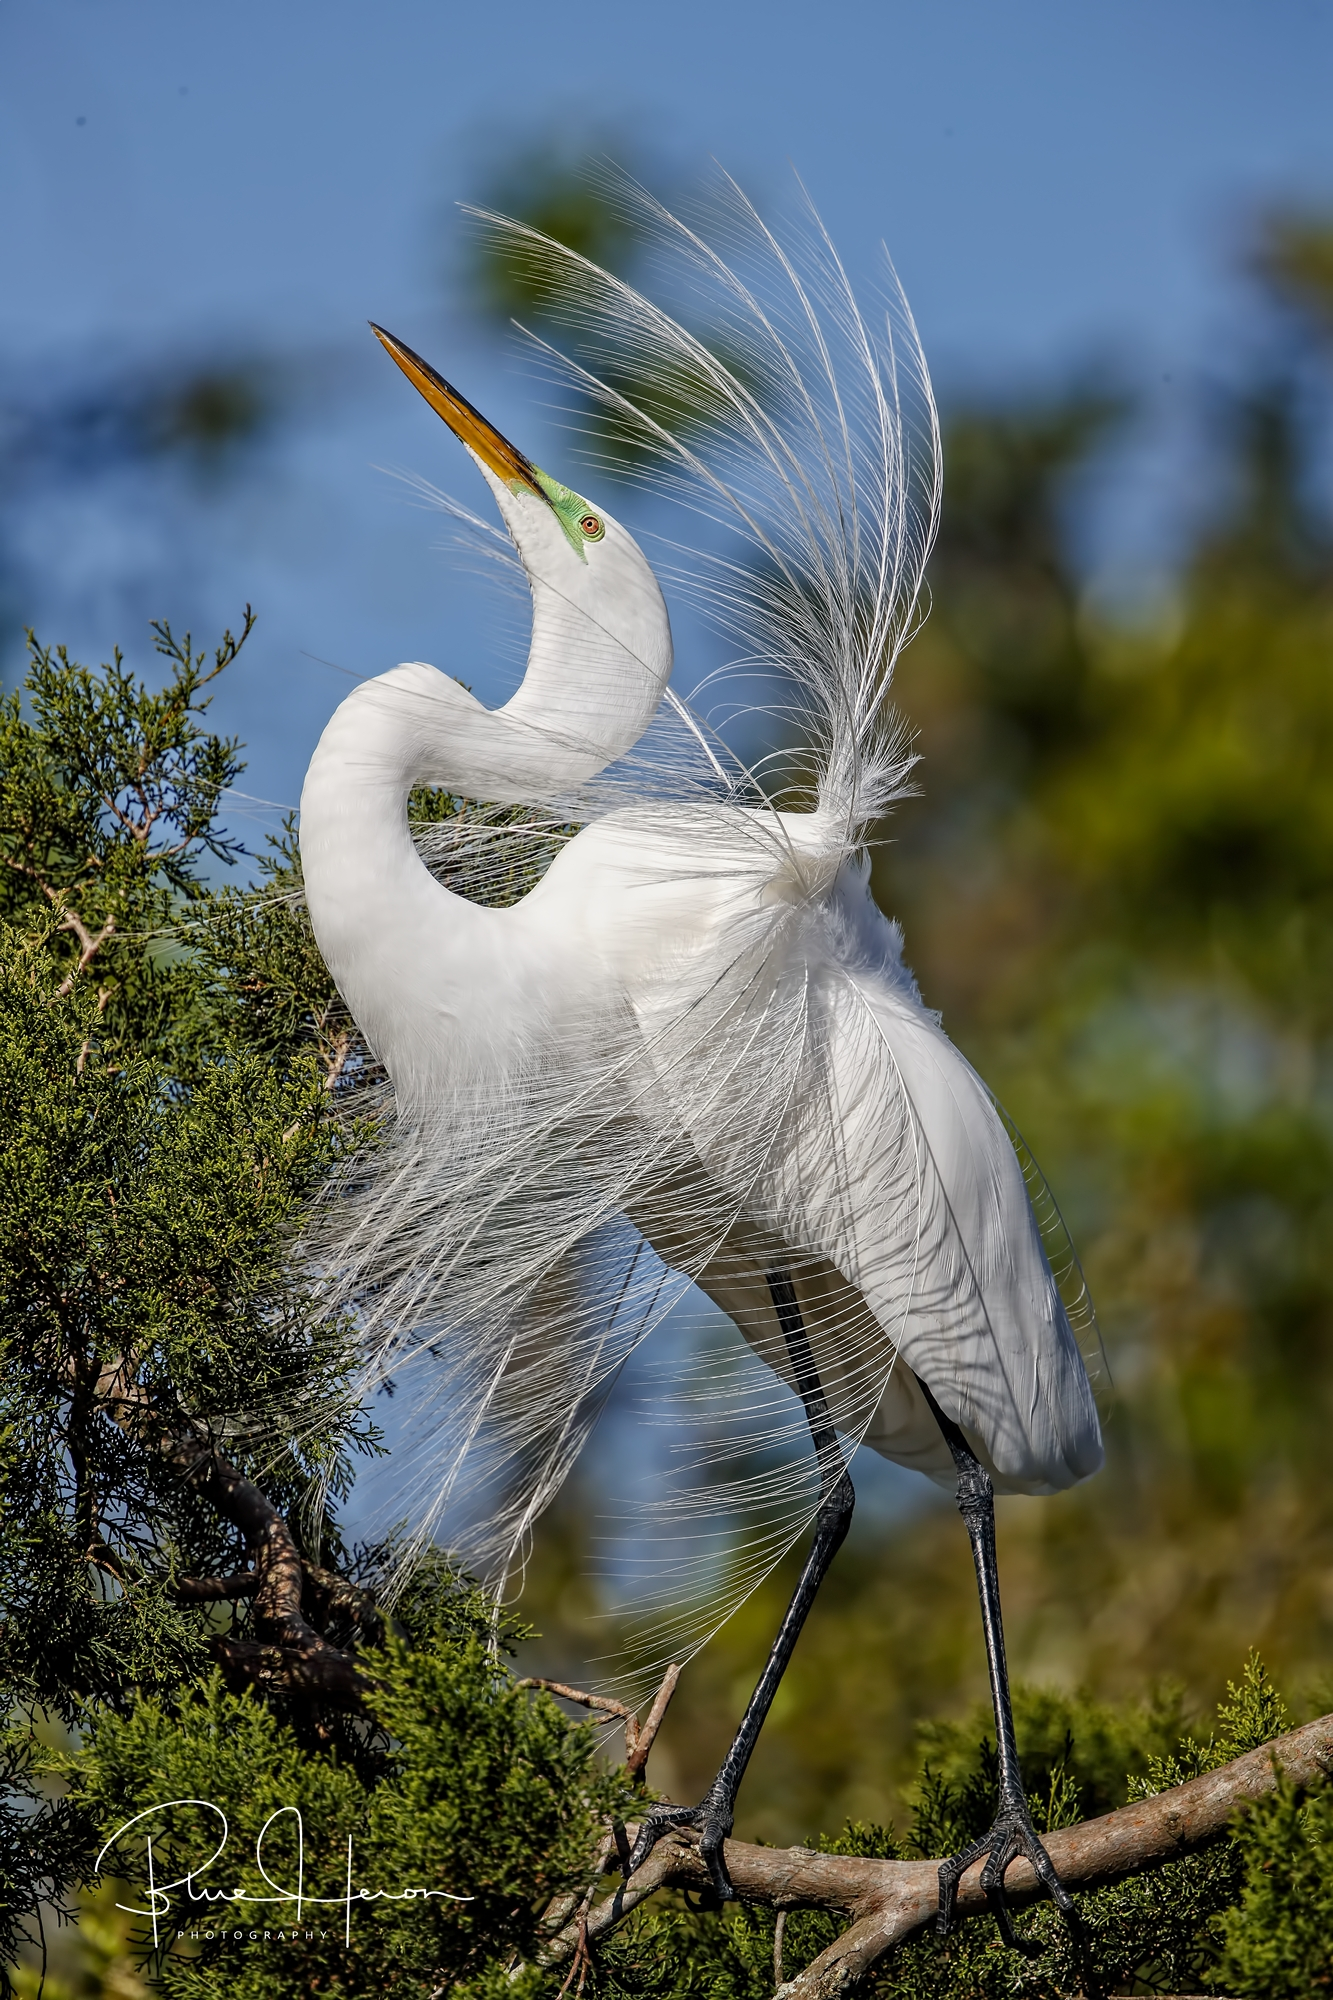 Windblown mating plumes on a beautiful Great Egret